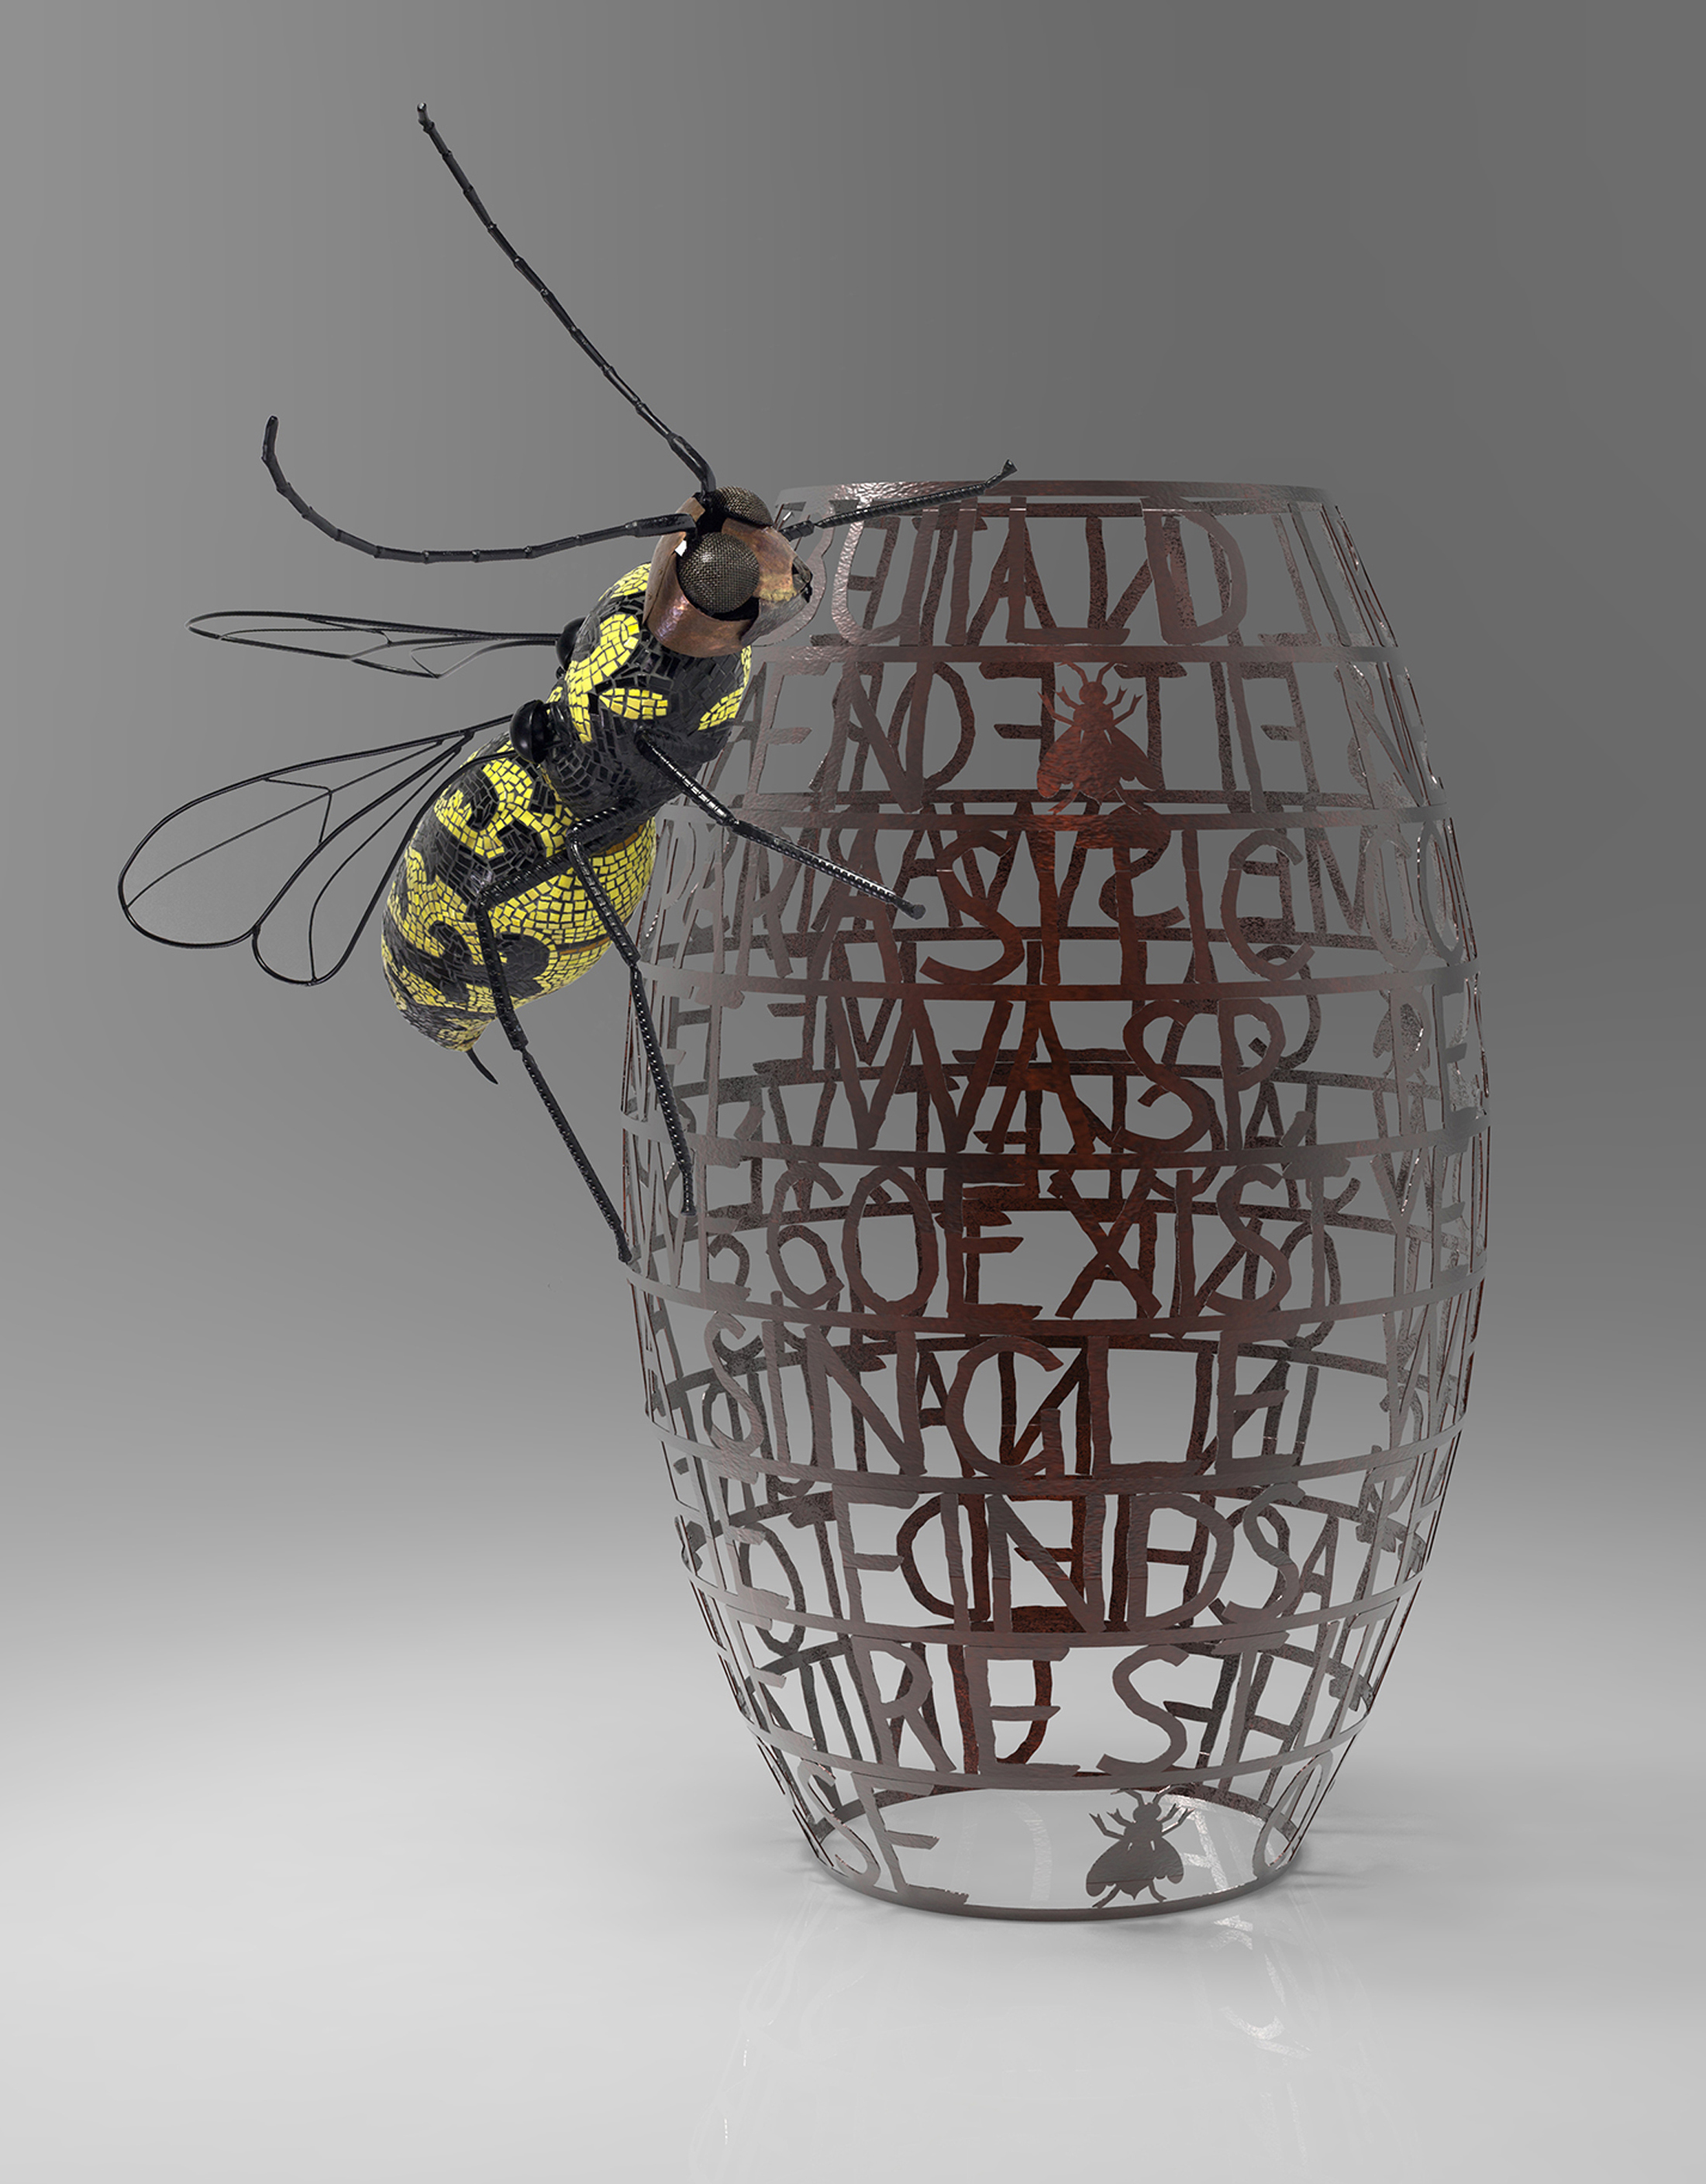 This is the rendered proposed piece.  However, the wasp will face down and there will be a 5' hexagonal base to deter climbing.